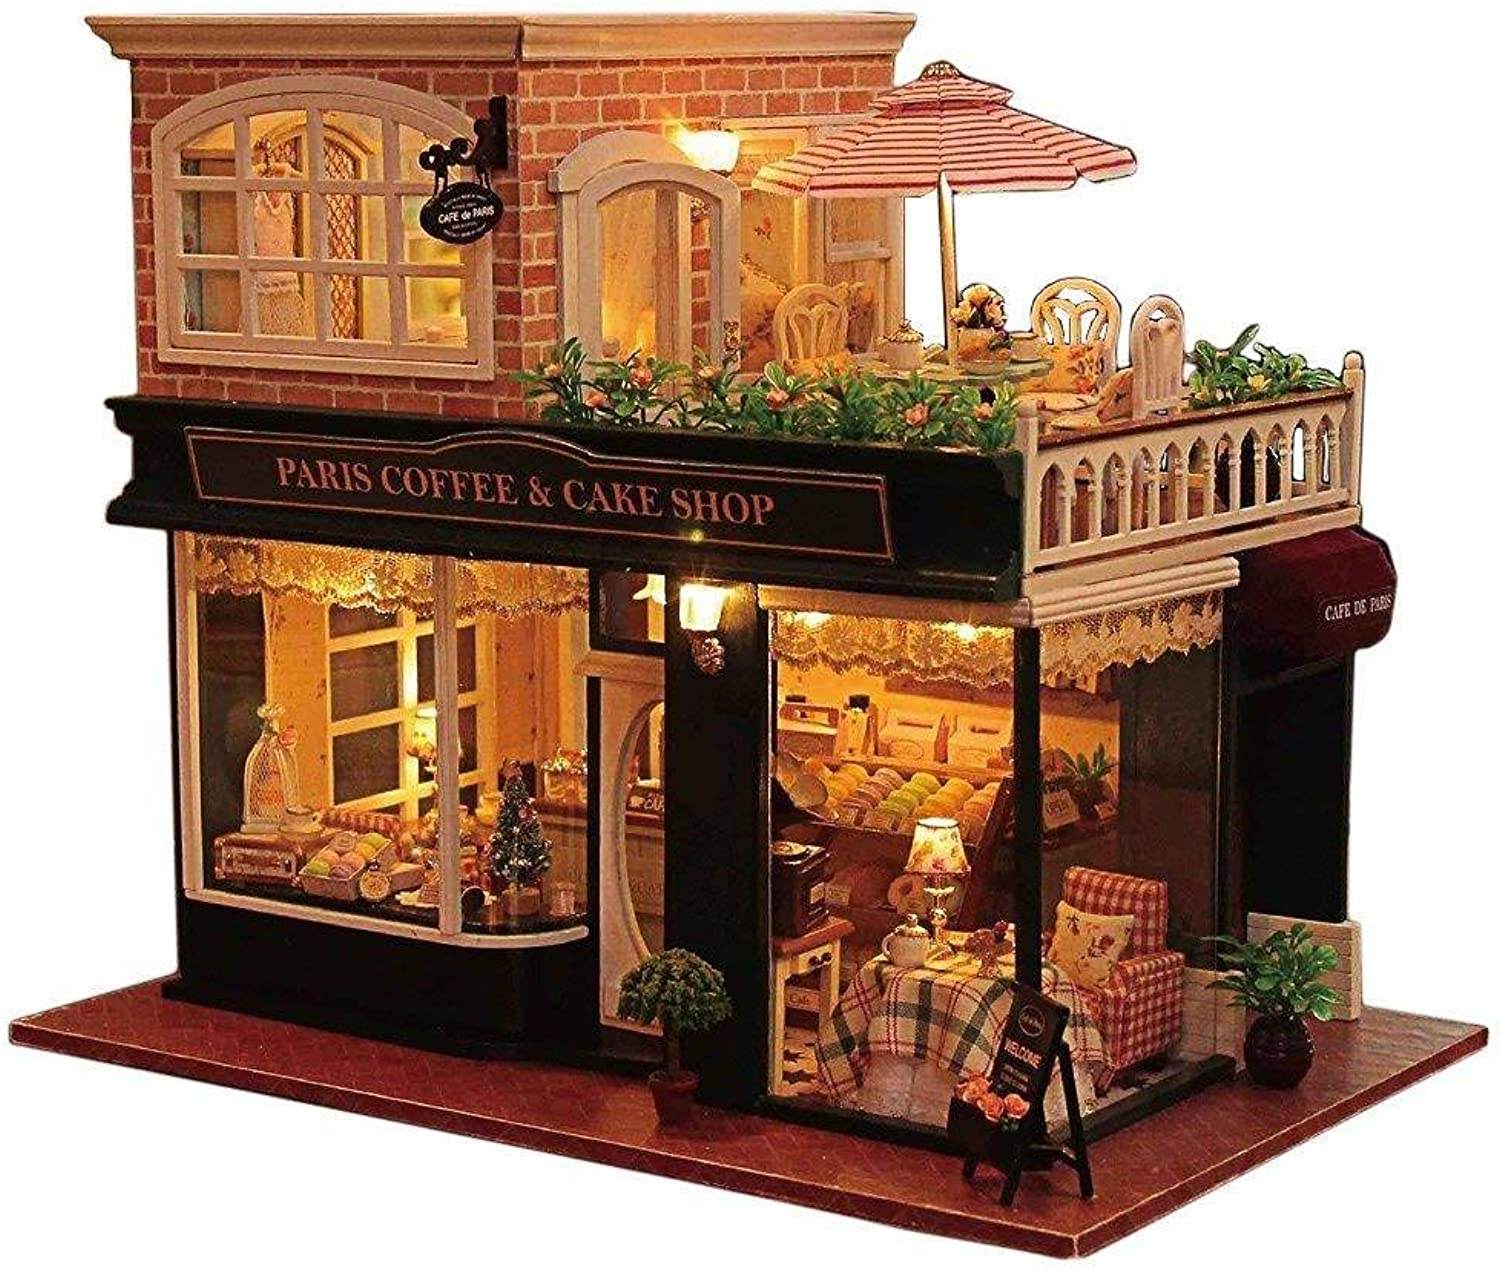 Rylai Wooden Hefatto bambolahouse Miniature DIY Kit - Rouomotic Cafe Series Wooden bambolahouses & Furniture Parts(1 24 Scale bambolahouse) by Rylai